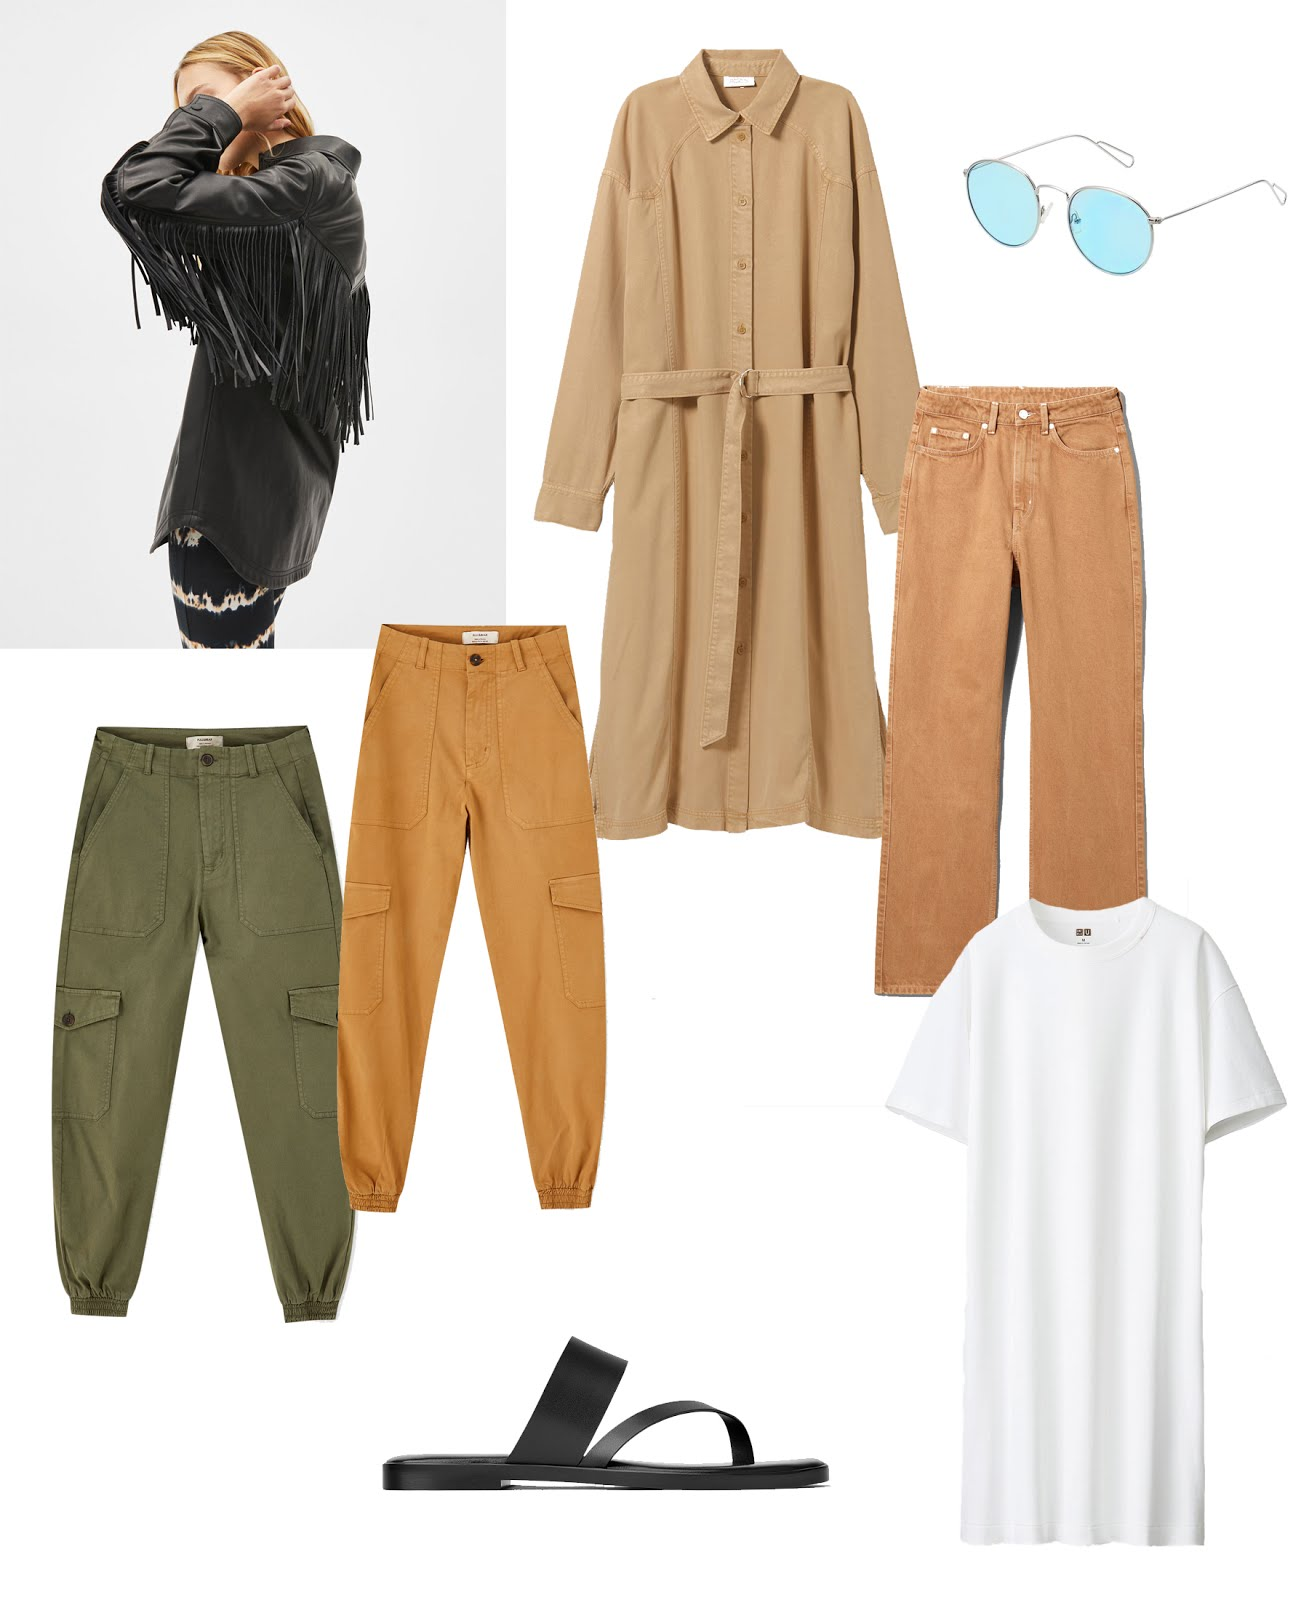 Bershka faux leather shirt, fringes, weekday long shirt dress, pull & bear cargo pants, weekday camel jeans, uniqlo t-shirt dress, zara minimal sandals, summer trends 2019